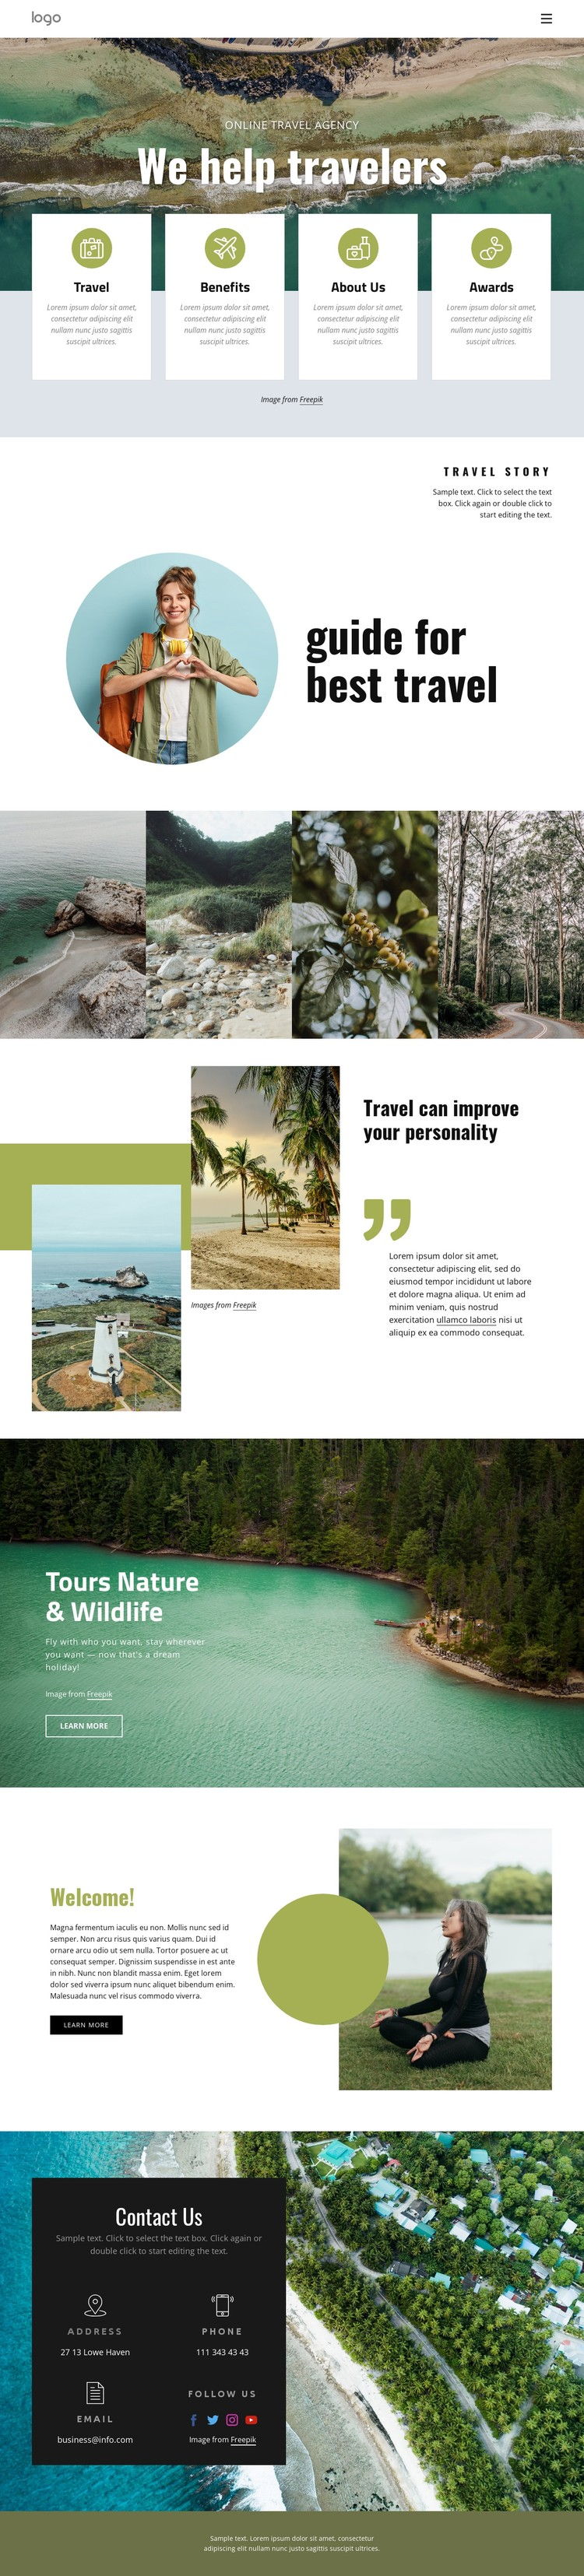 We help manage your trip Static Site Generator